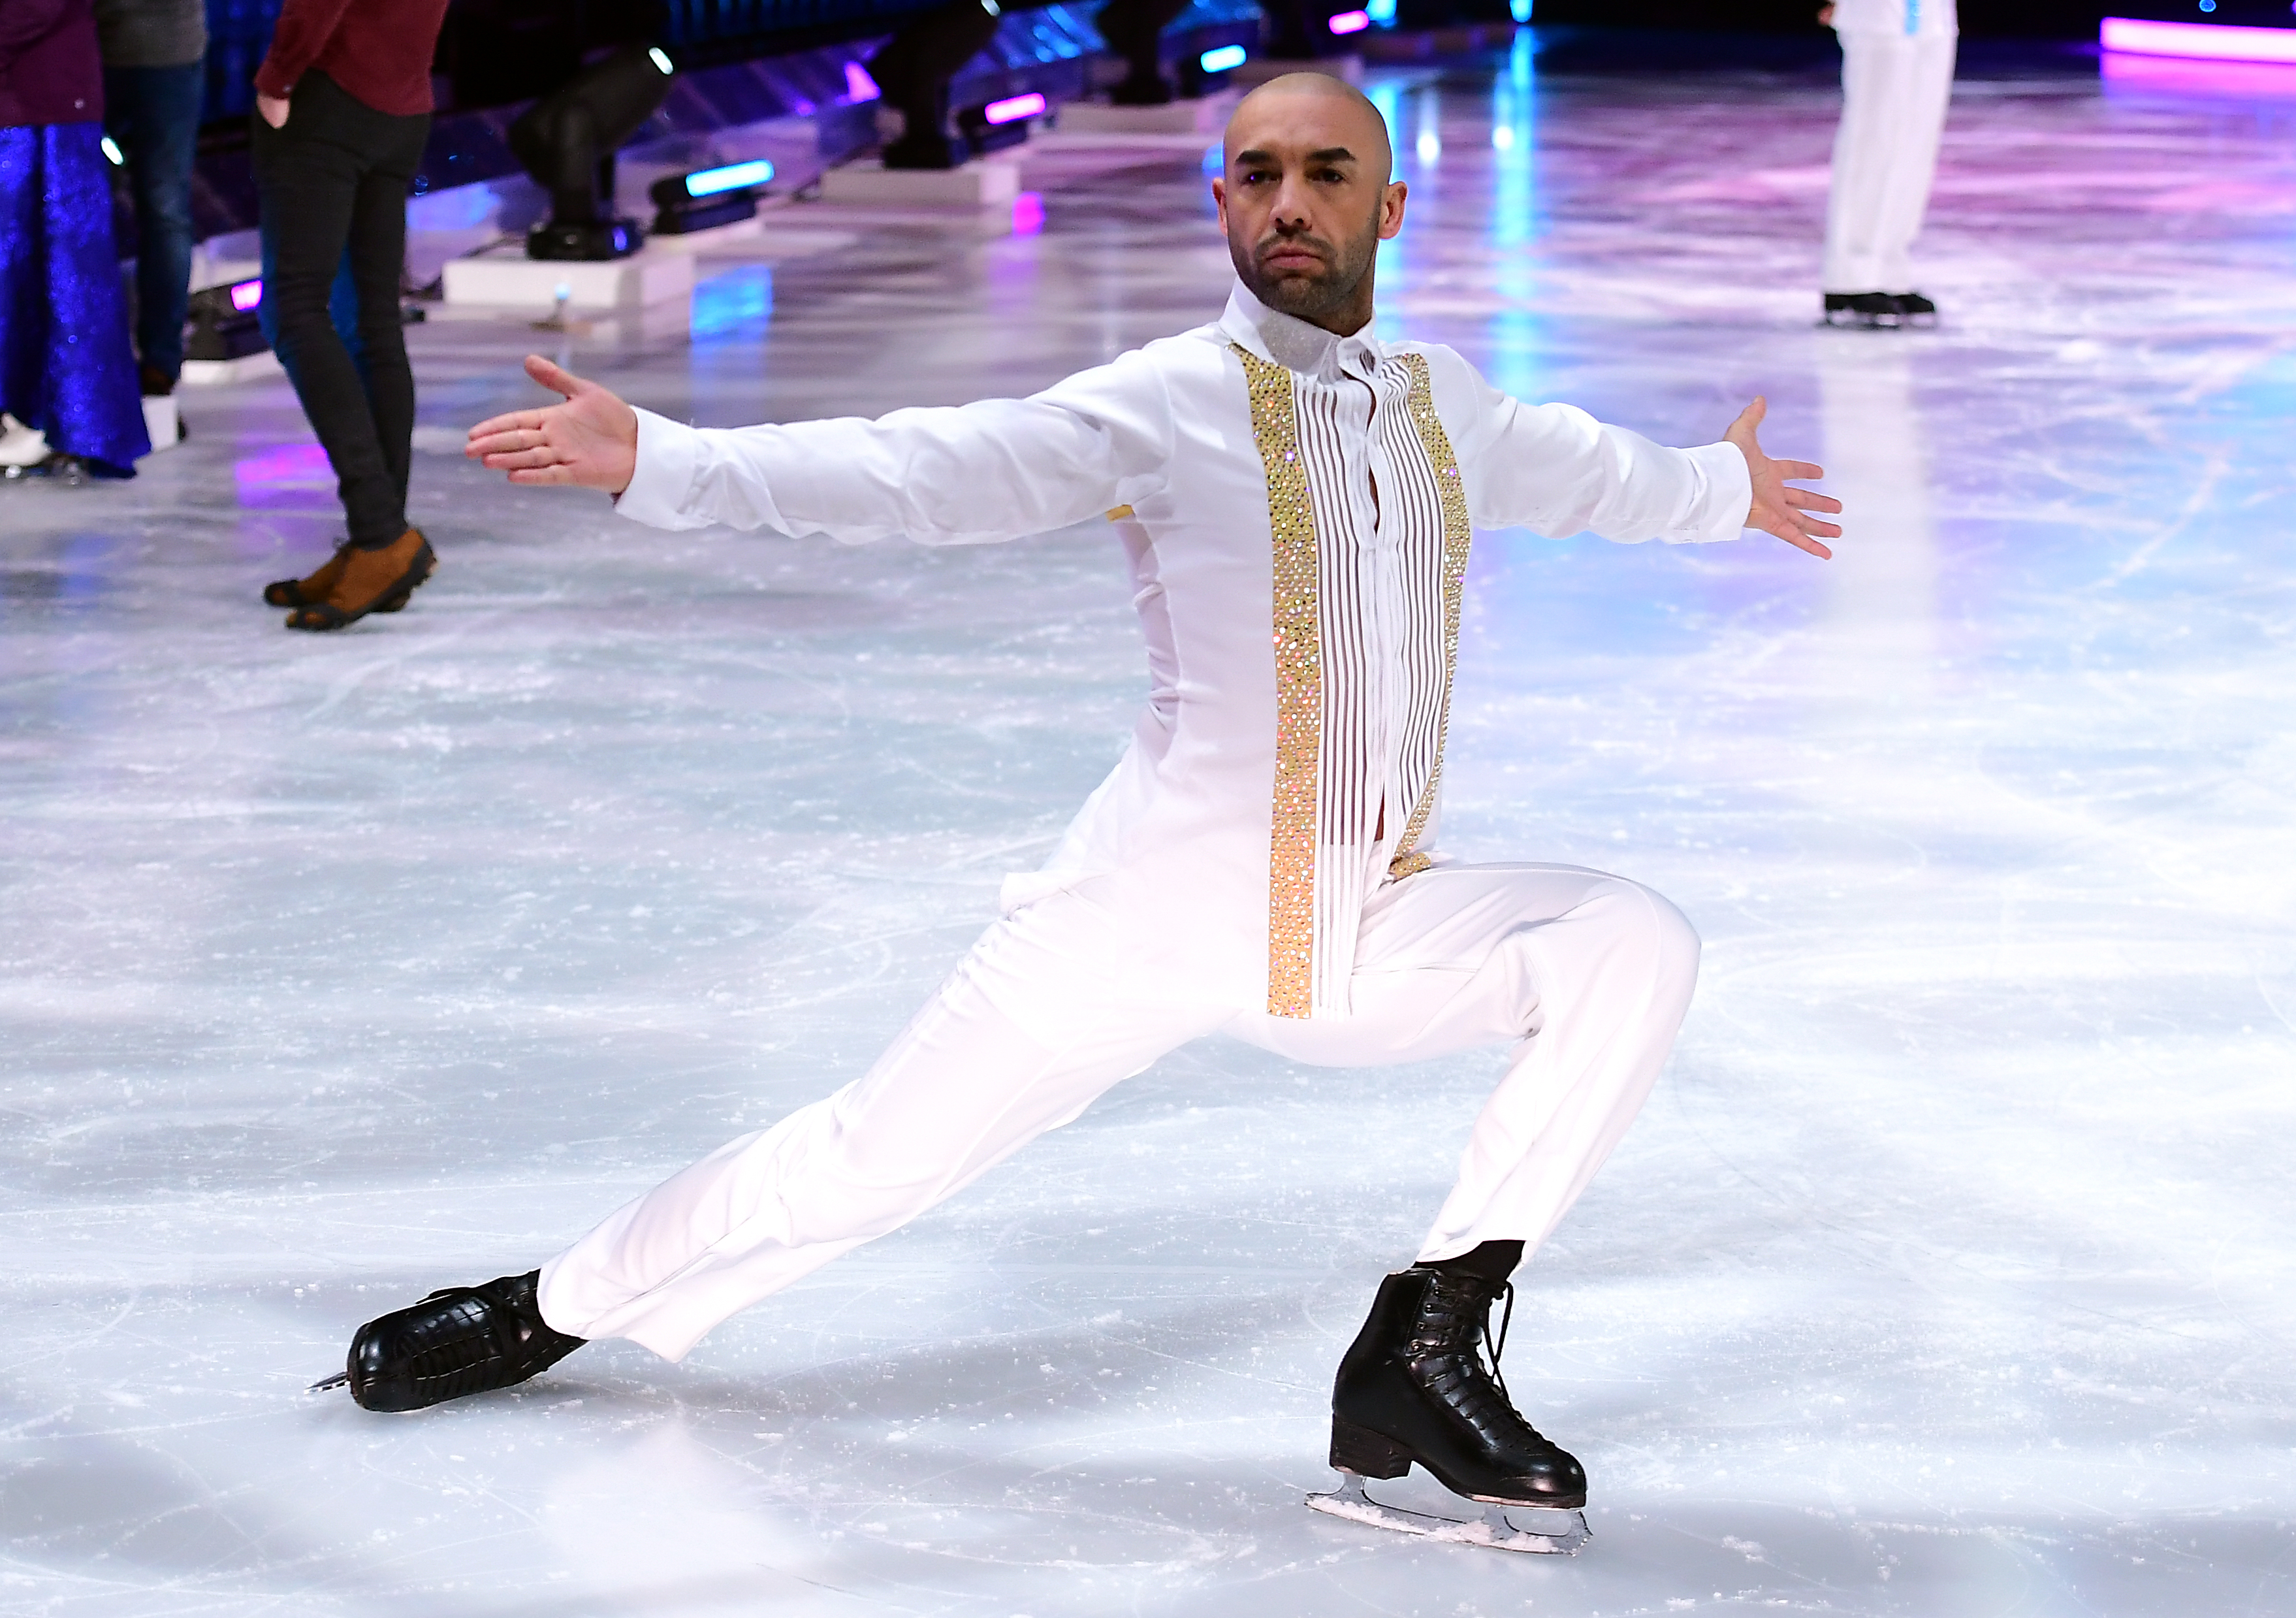 Alex Beresford during the Dancing On Ice Live UK Tour Launch Photocall at SSE Arena, London. (Photo by Ian West/PA Images via Getty Images)